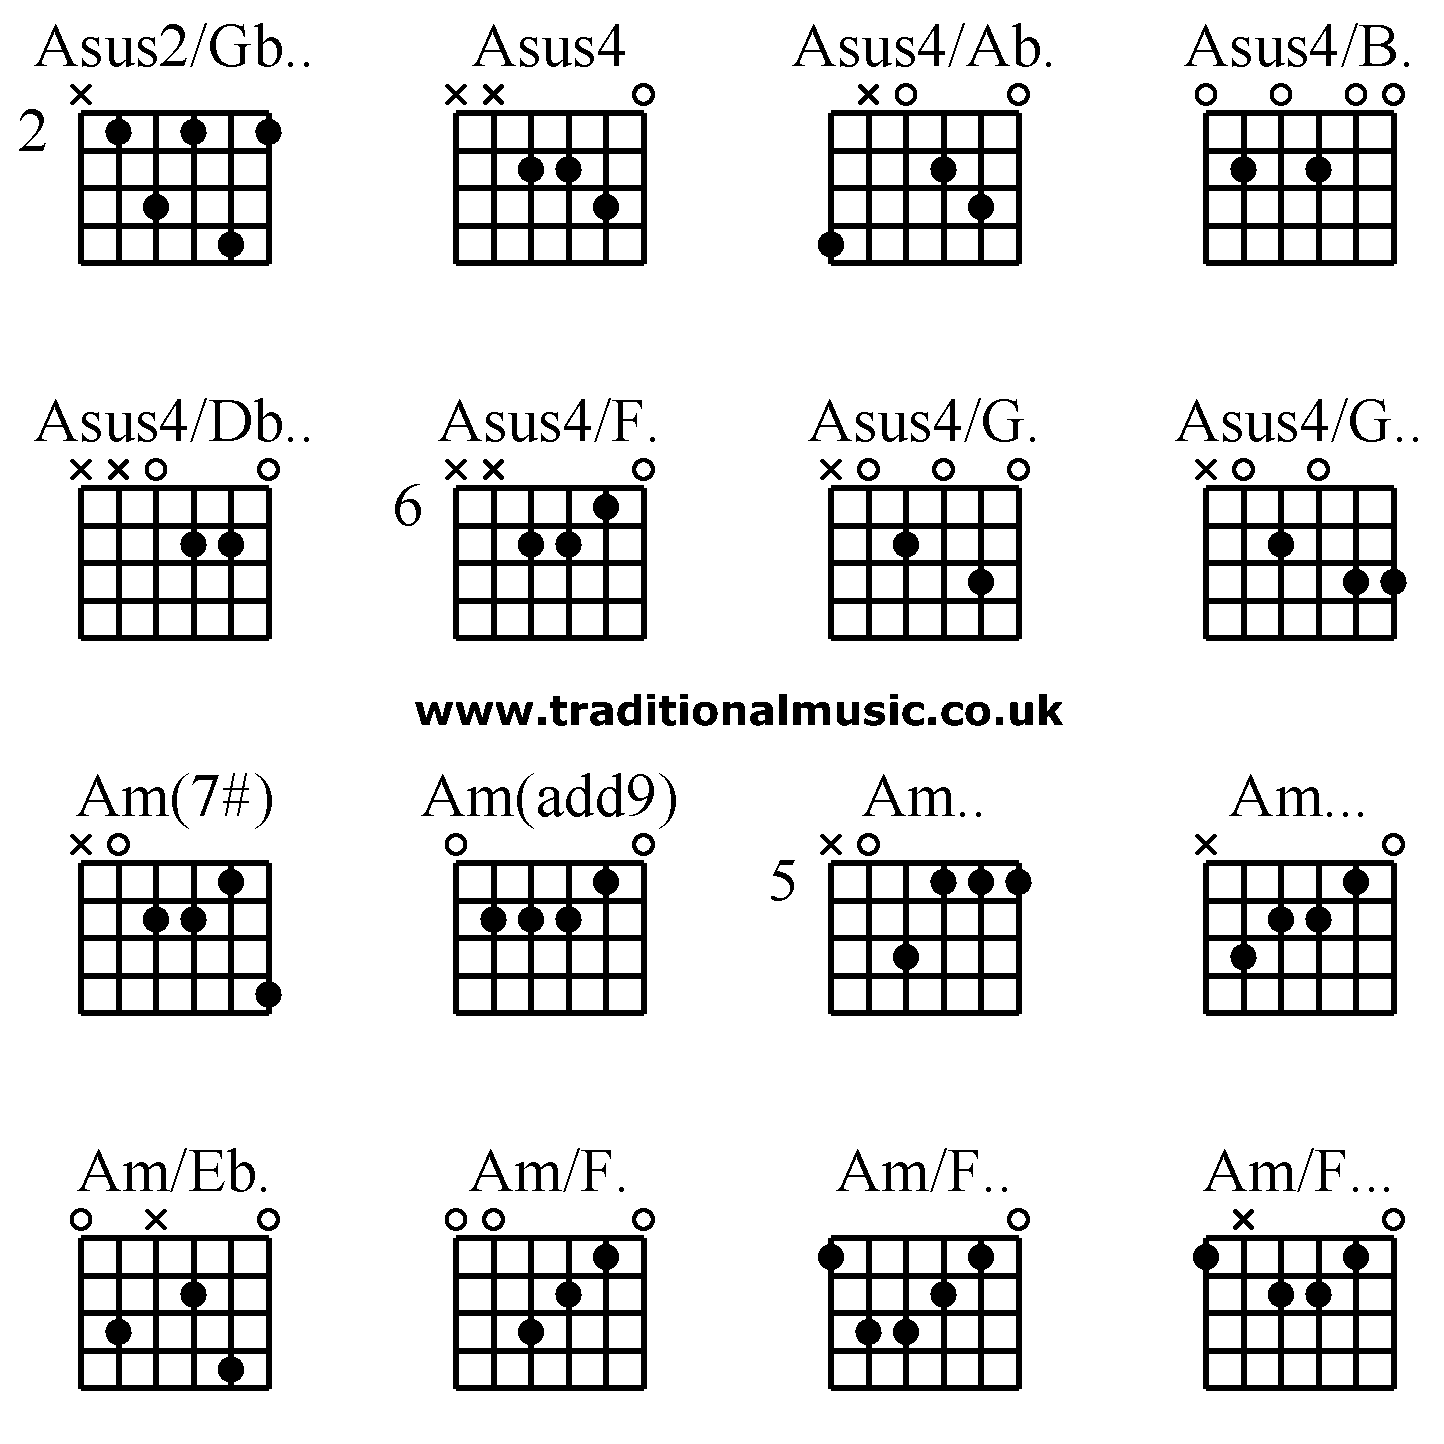 Advanced Guitar Chords Asus2gb Asus4 Asus4ab Asus4b Asus4db